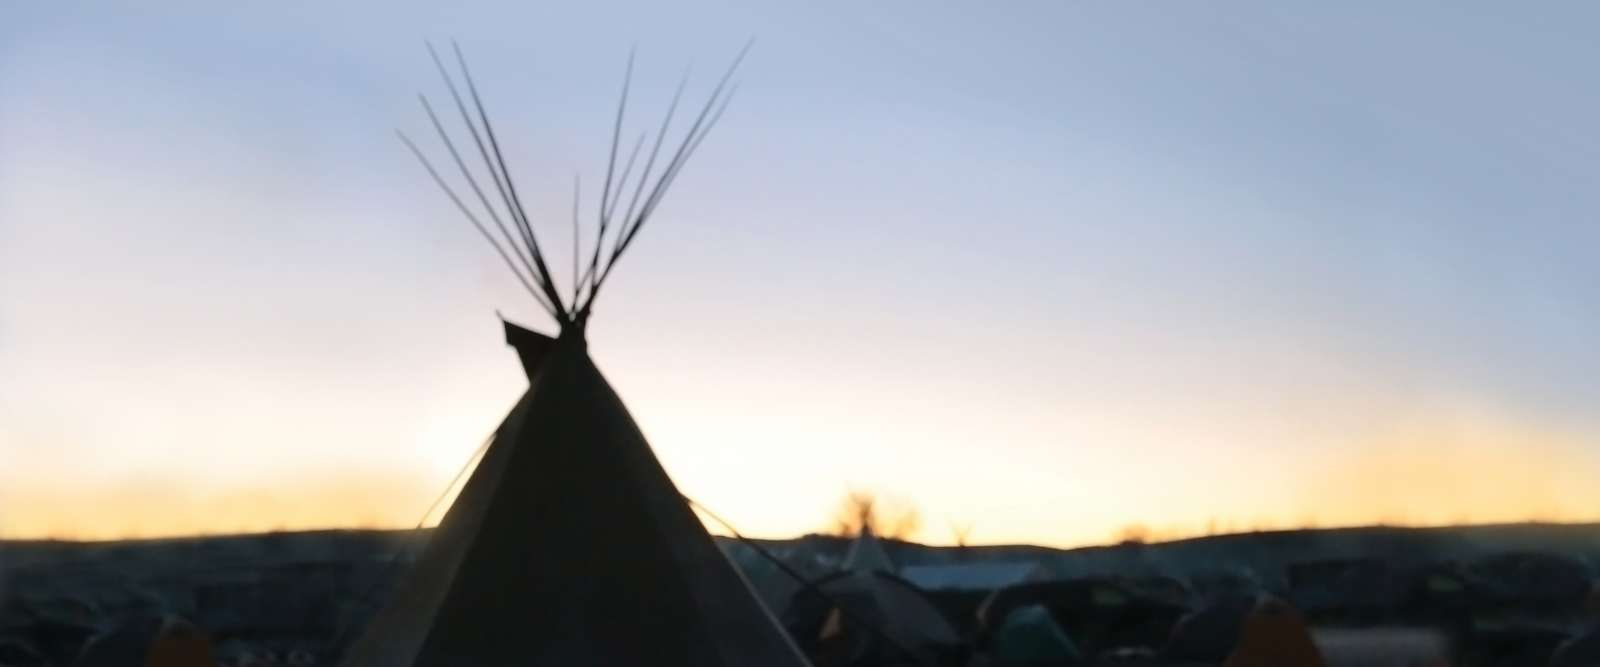 Teepee at Standing Rock